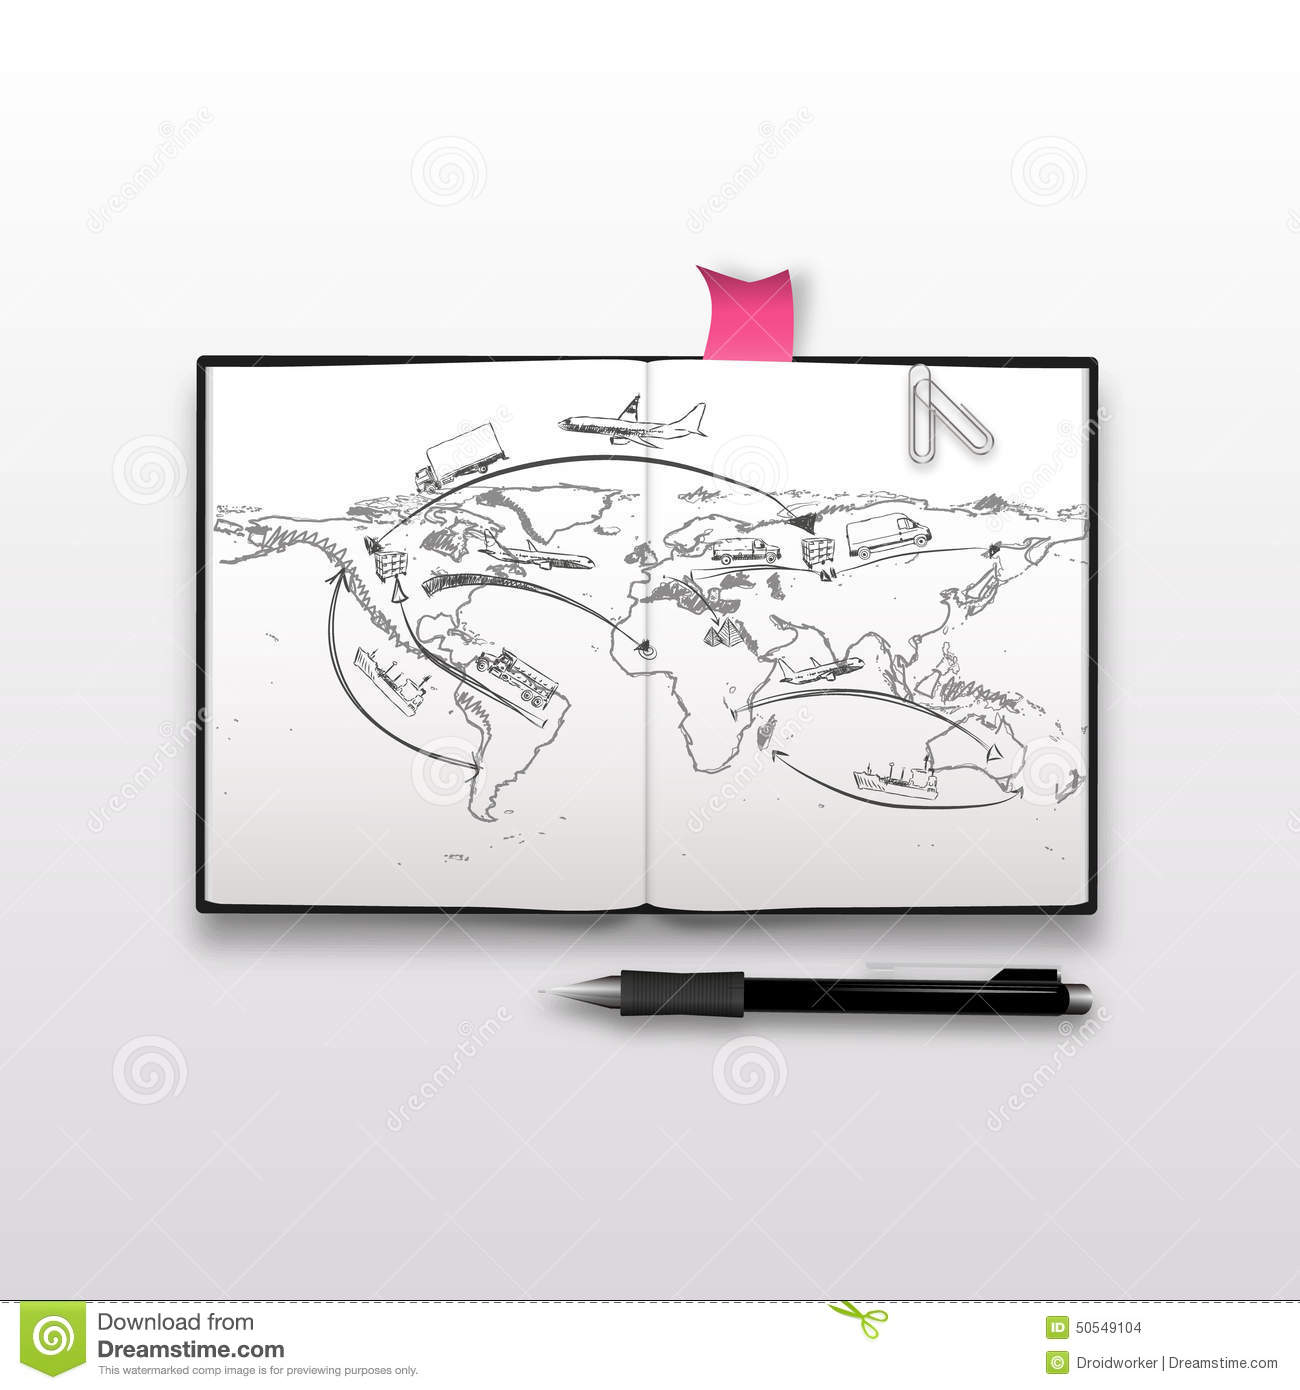 World map and logistics sketch on notebook stock vector world map and logistics sketch on notebook royalty free vector download gumiabroncs Images